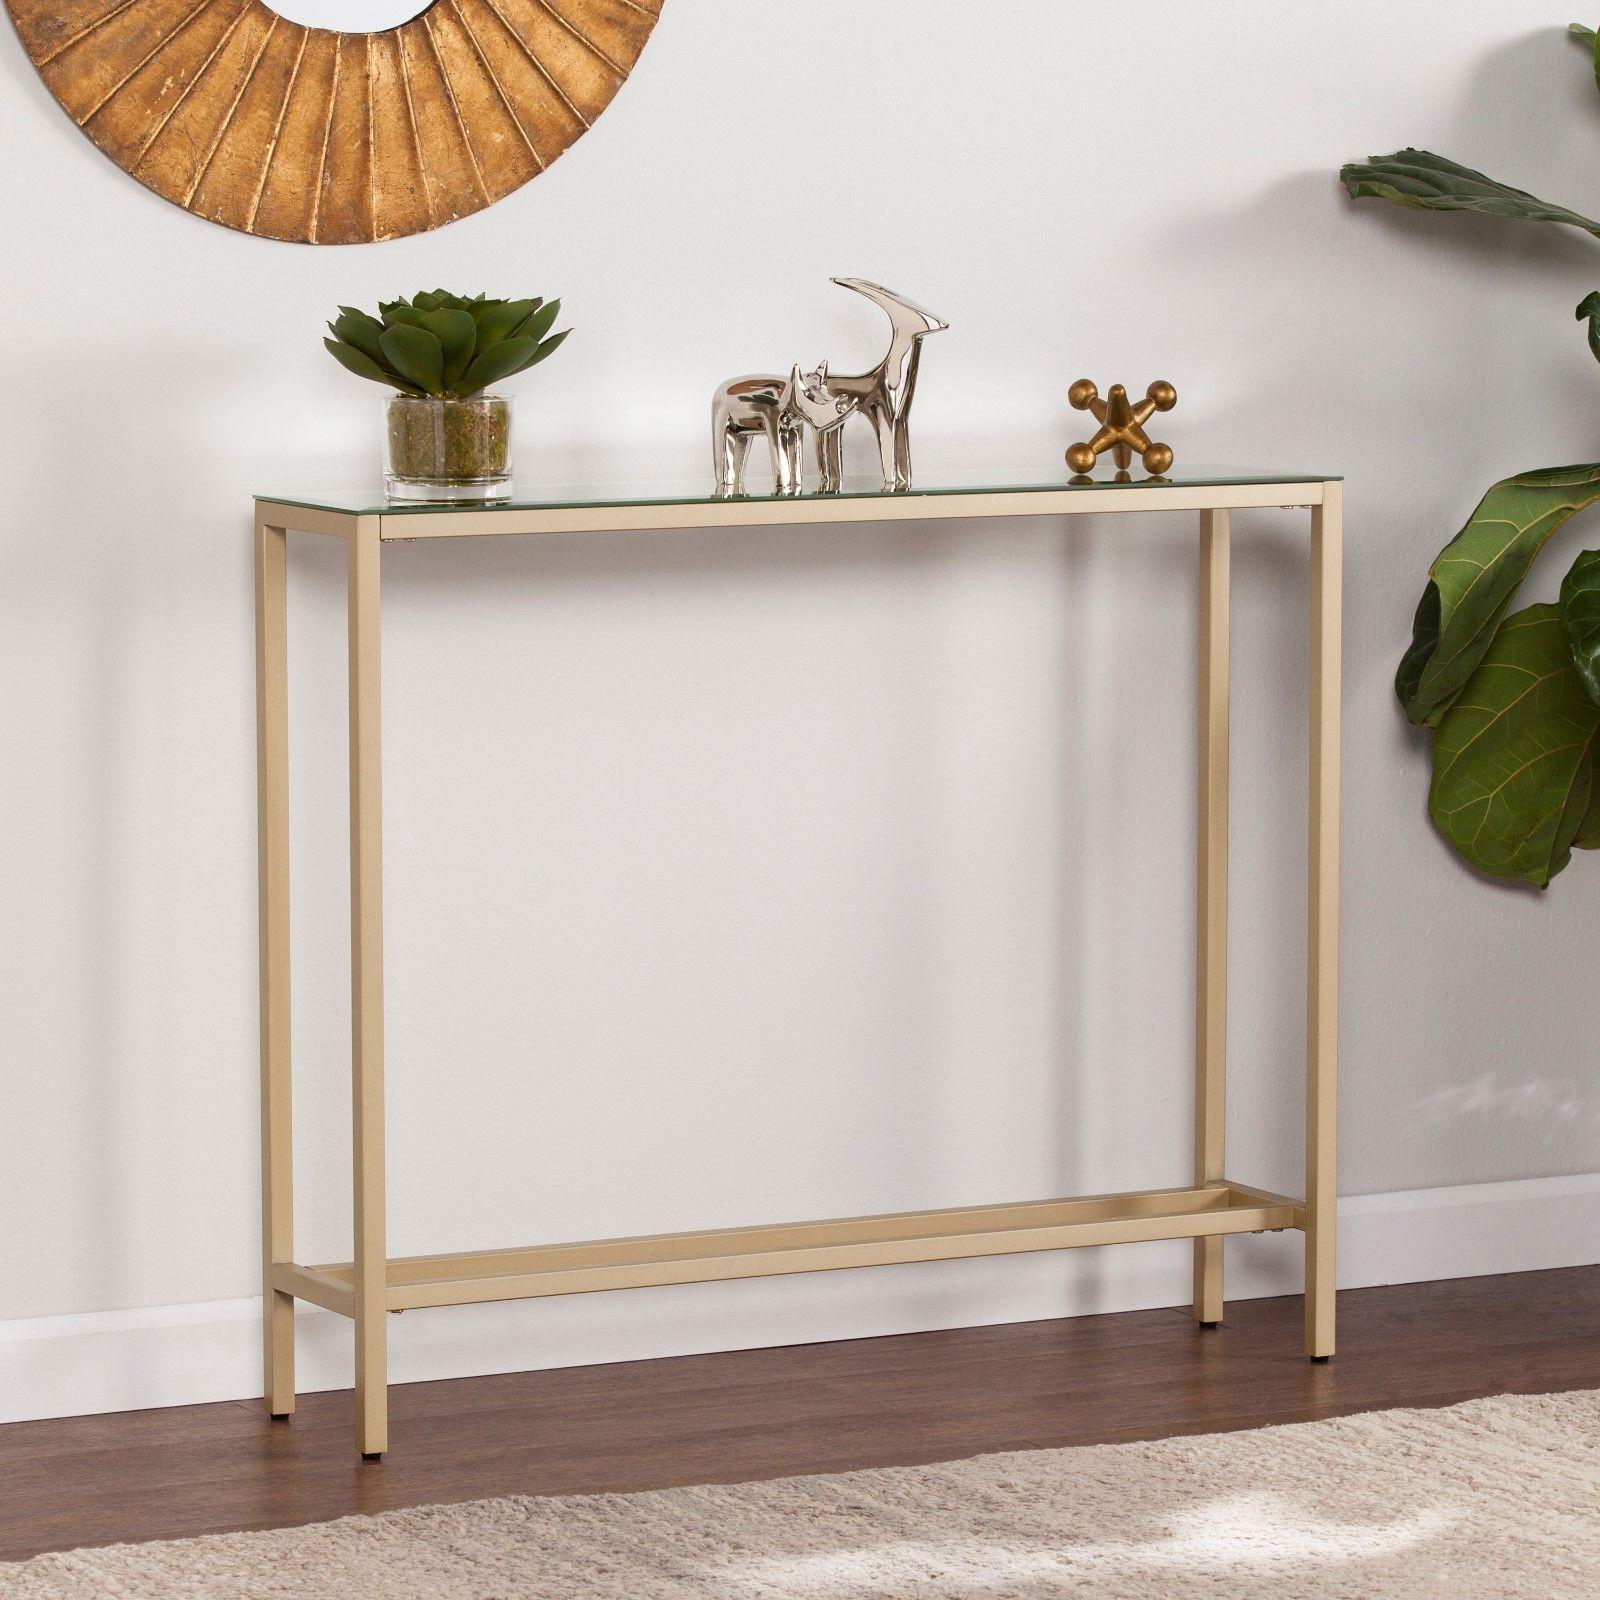 JST79529 Narrow Console Table w/ Mirrored Top - Gold